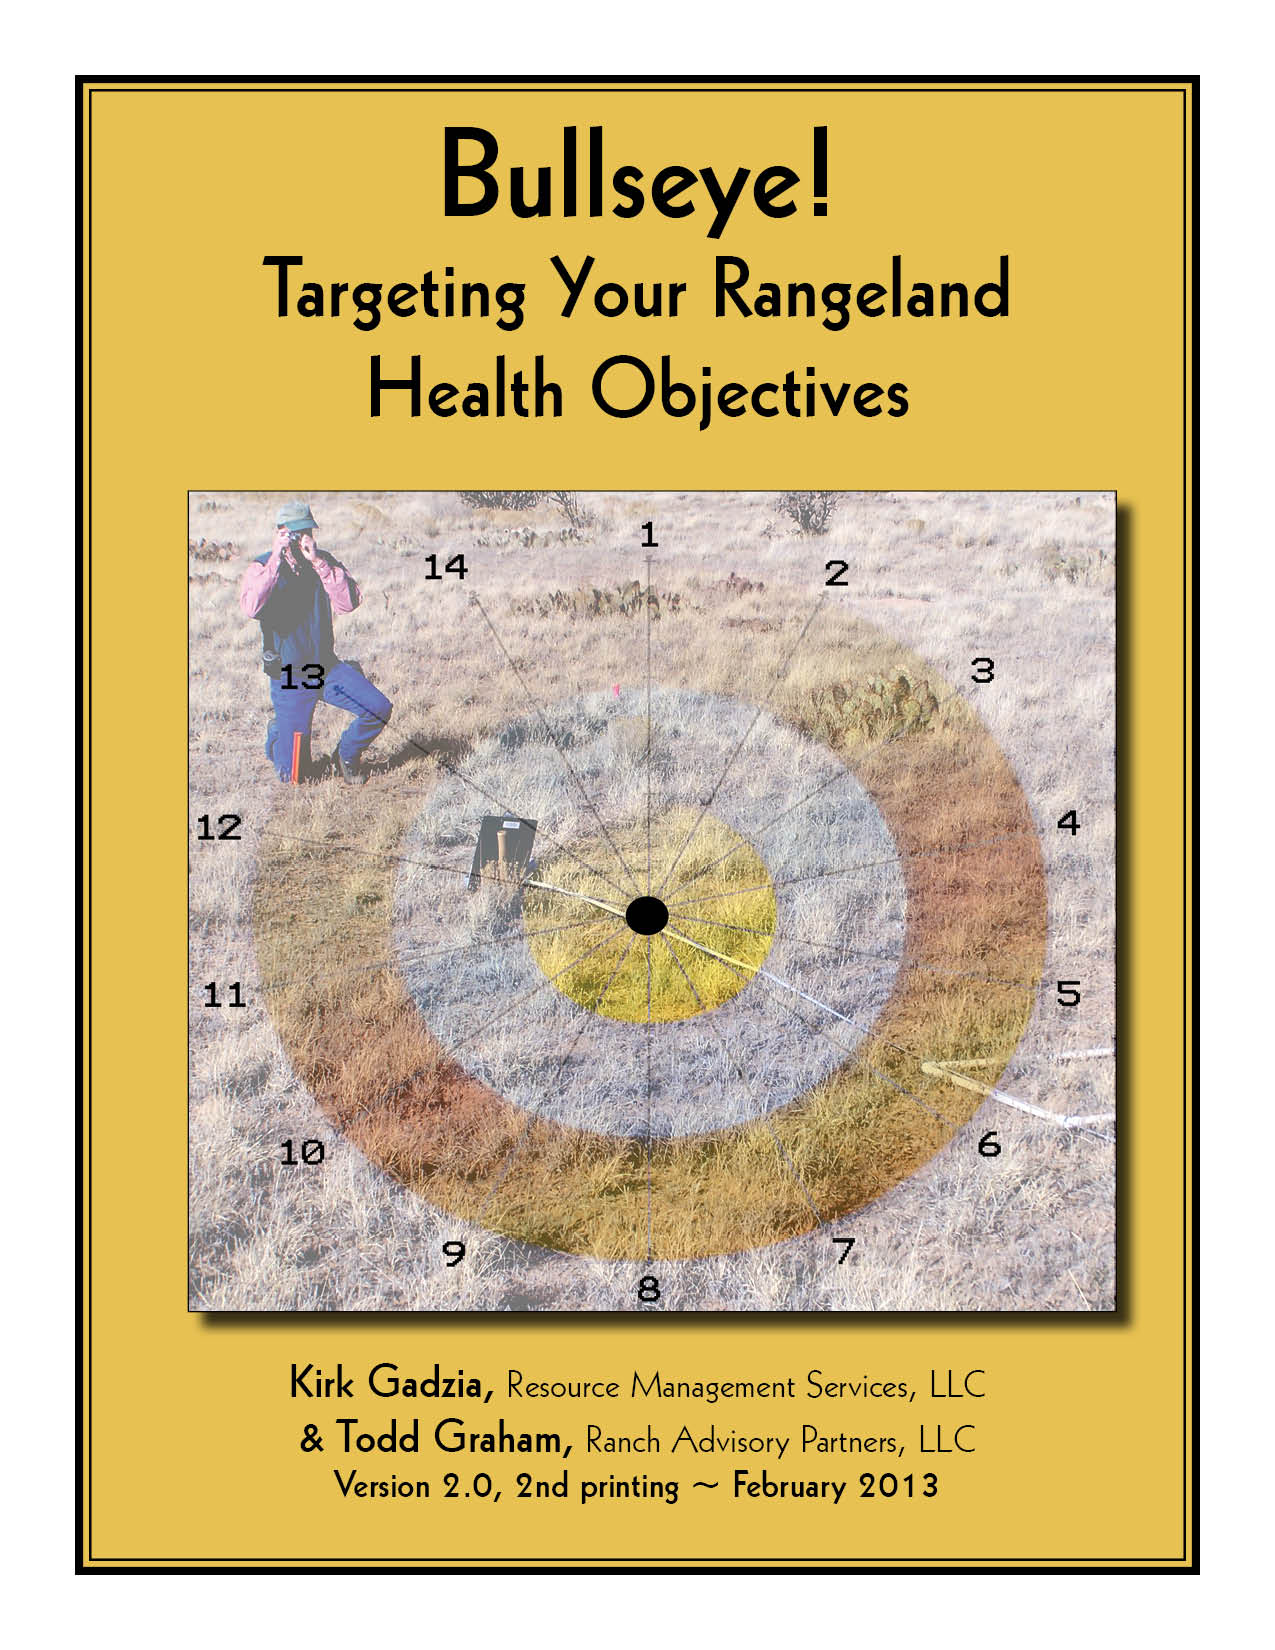 Bullseye! Targeting Your Rangeland Objectives, Version 2.0, 2nd Printing, February 2013 - by Kirk Gadzia and Todd Graham -